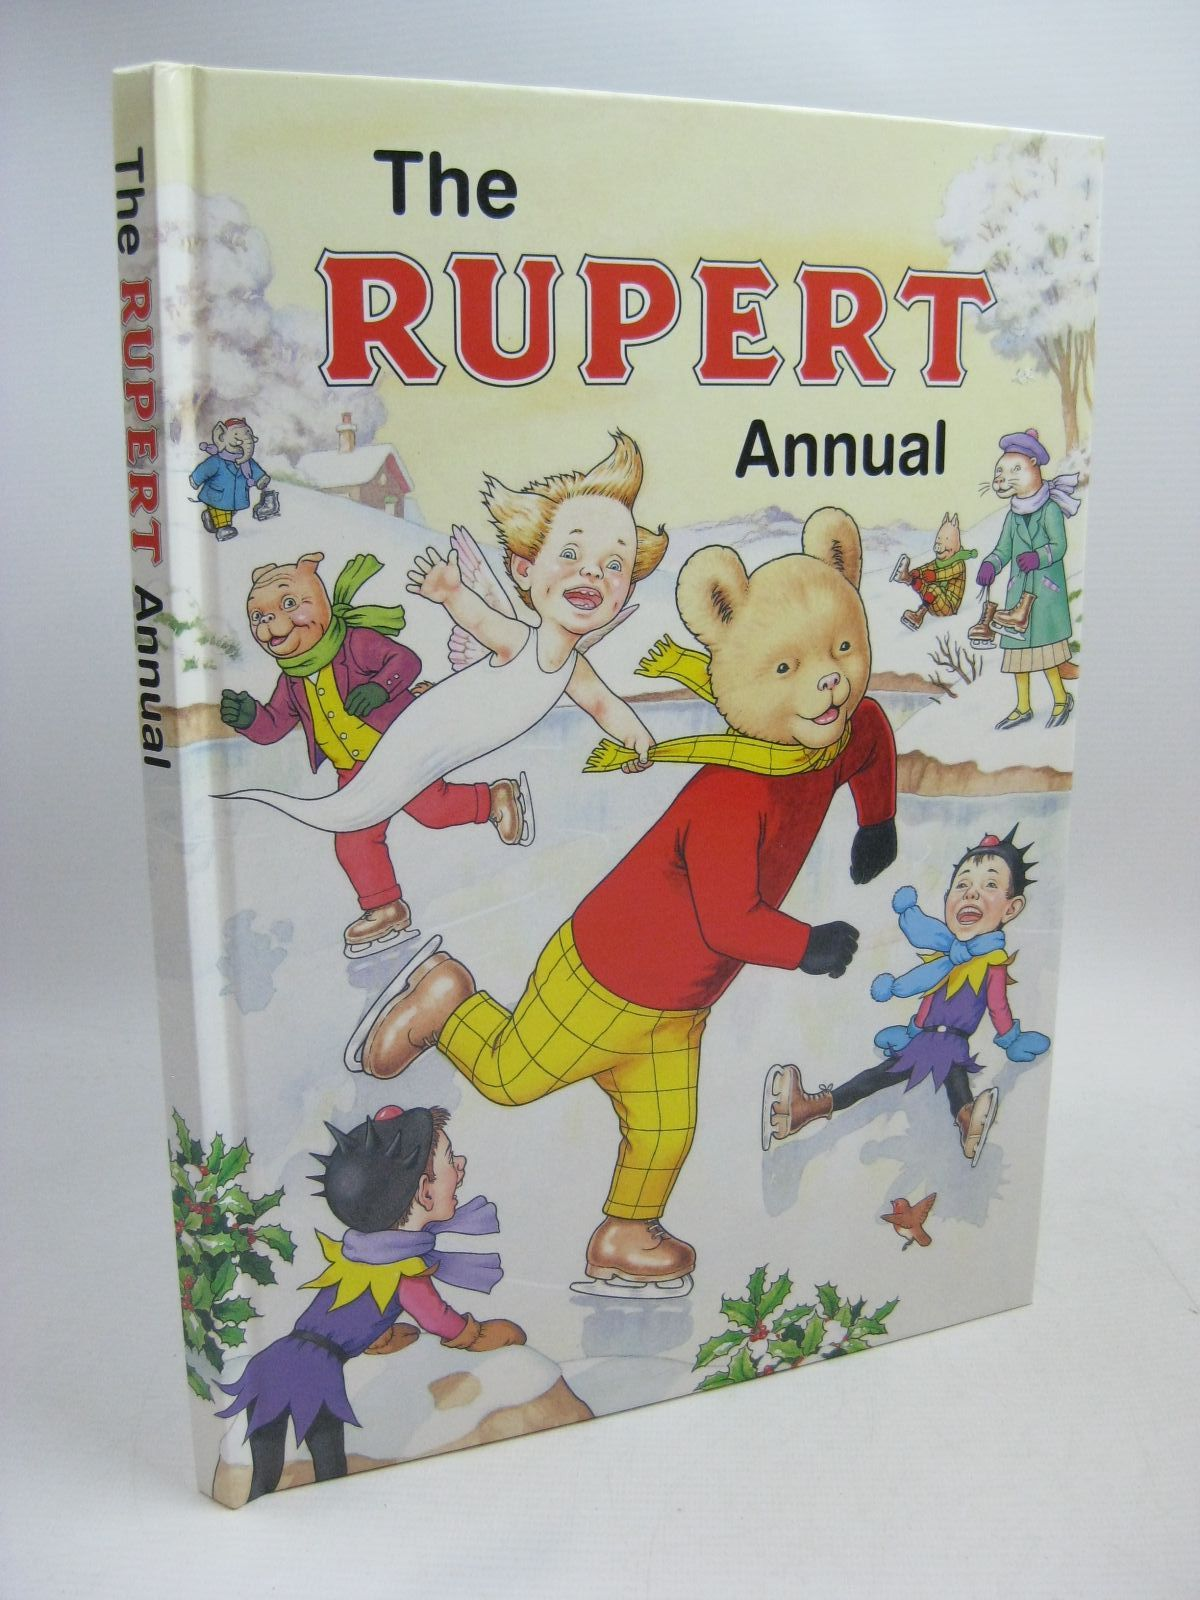 Photo of RUPERT ANNUAL 2005 written by Henderson, James Robinson, Ian illustrated by Harrold, John published by Express Newspapers Ltd. (STOCK CODE: 1315422)  for sale by Stella & Rose's Books